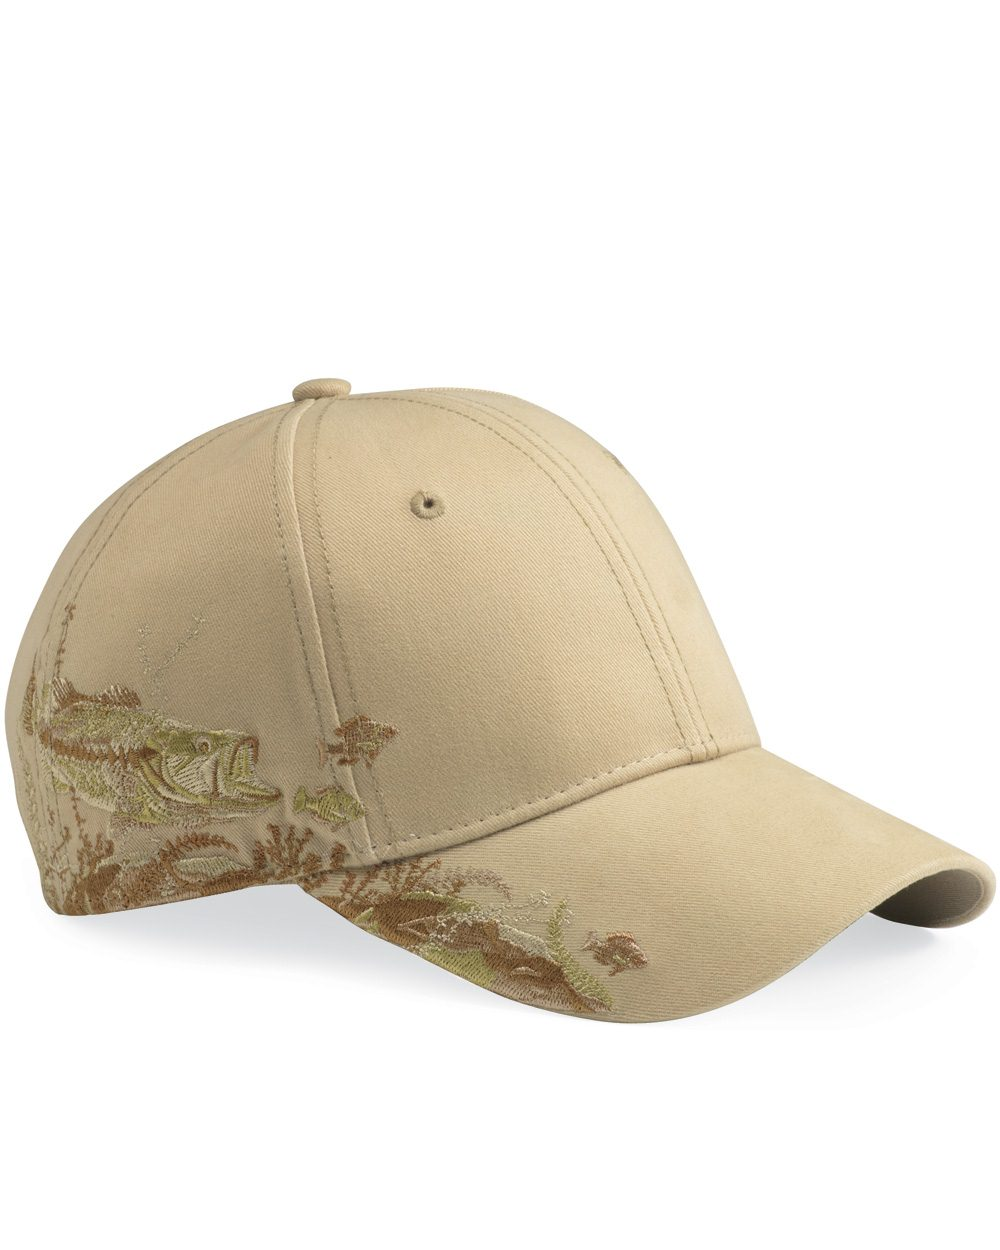 DRI DUCK Wildlife Series Bass Cap - 3303